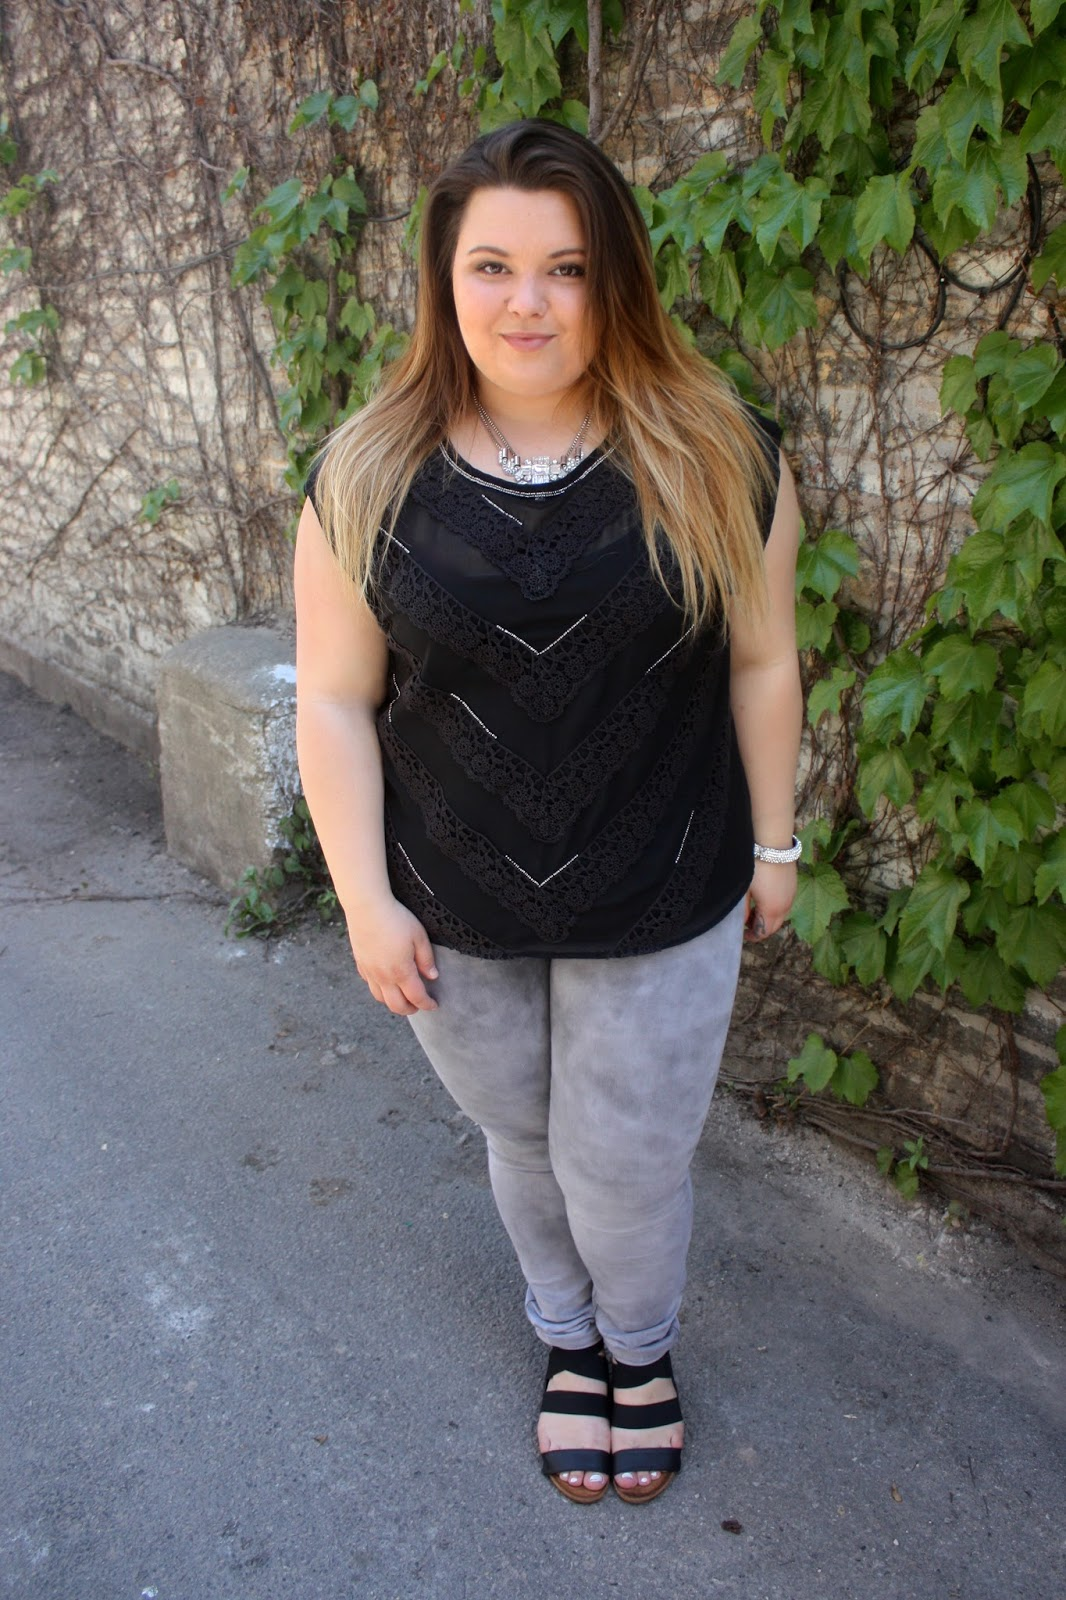 Natalie craig, natalie in the city, plus size fashion blogger, fashion blogger, chicago, ps fashion, plus size, curvy, forever 21 plus, curvy and confident, gray denim, denim trends, summer fashion